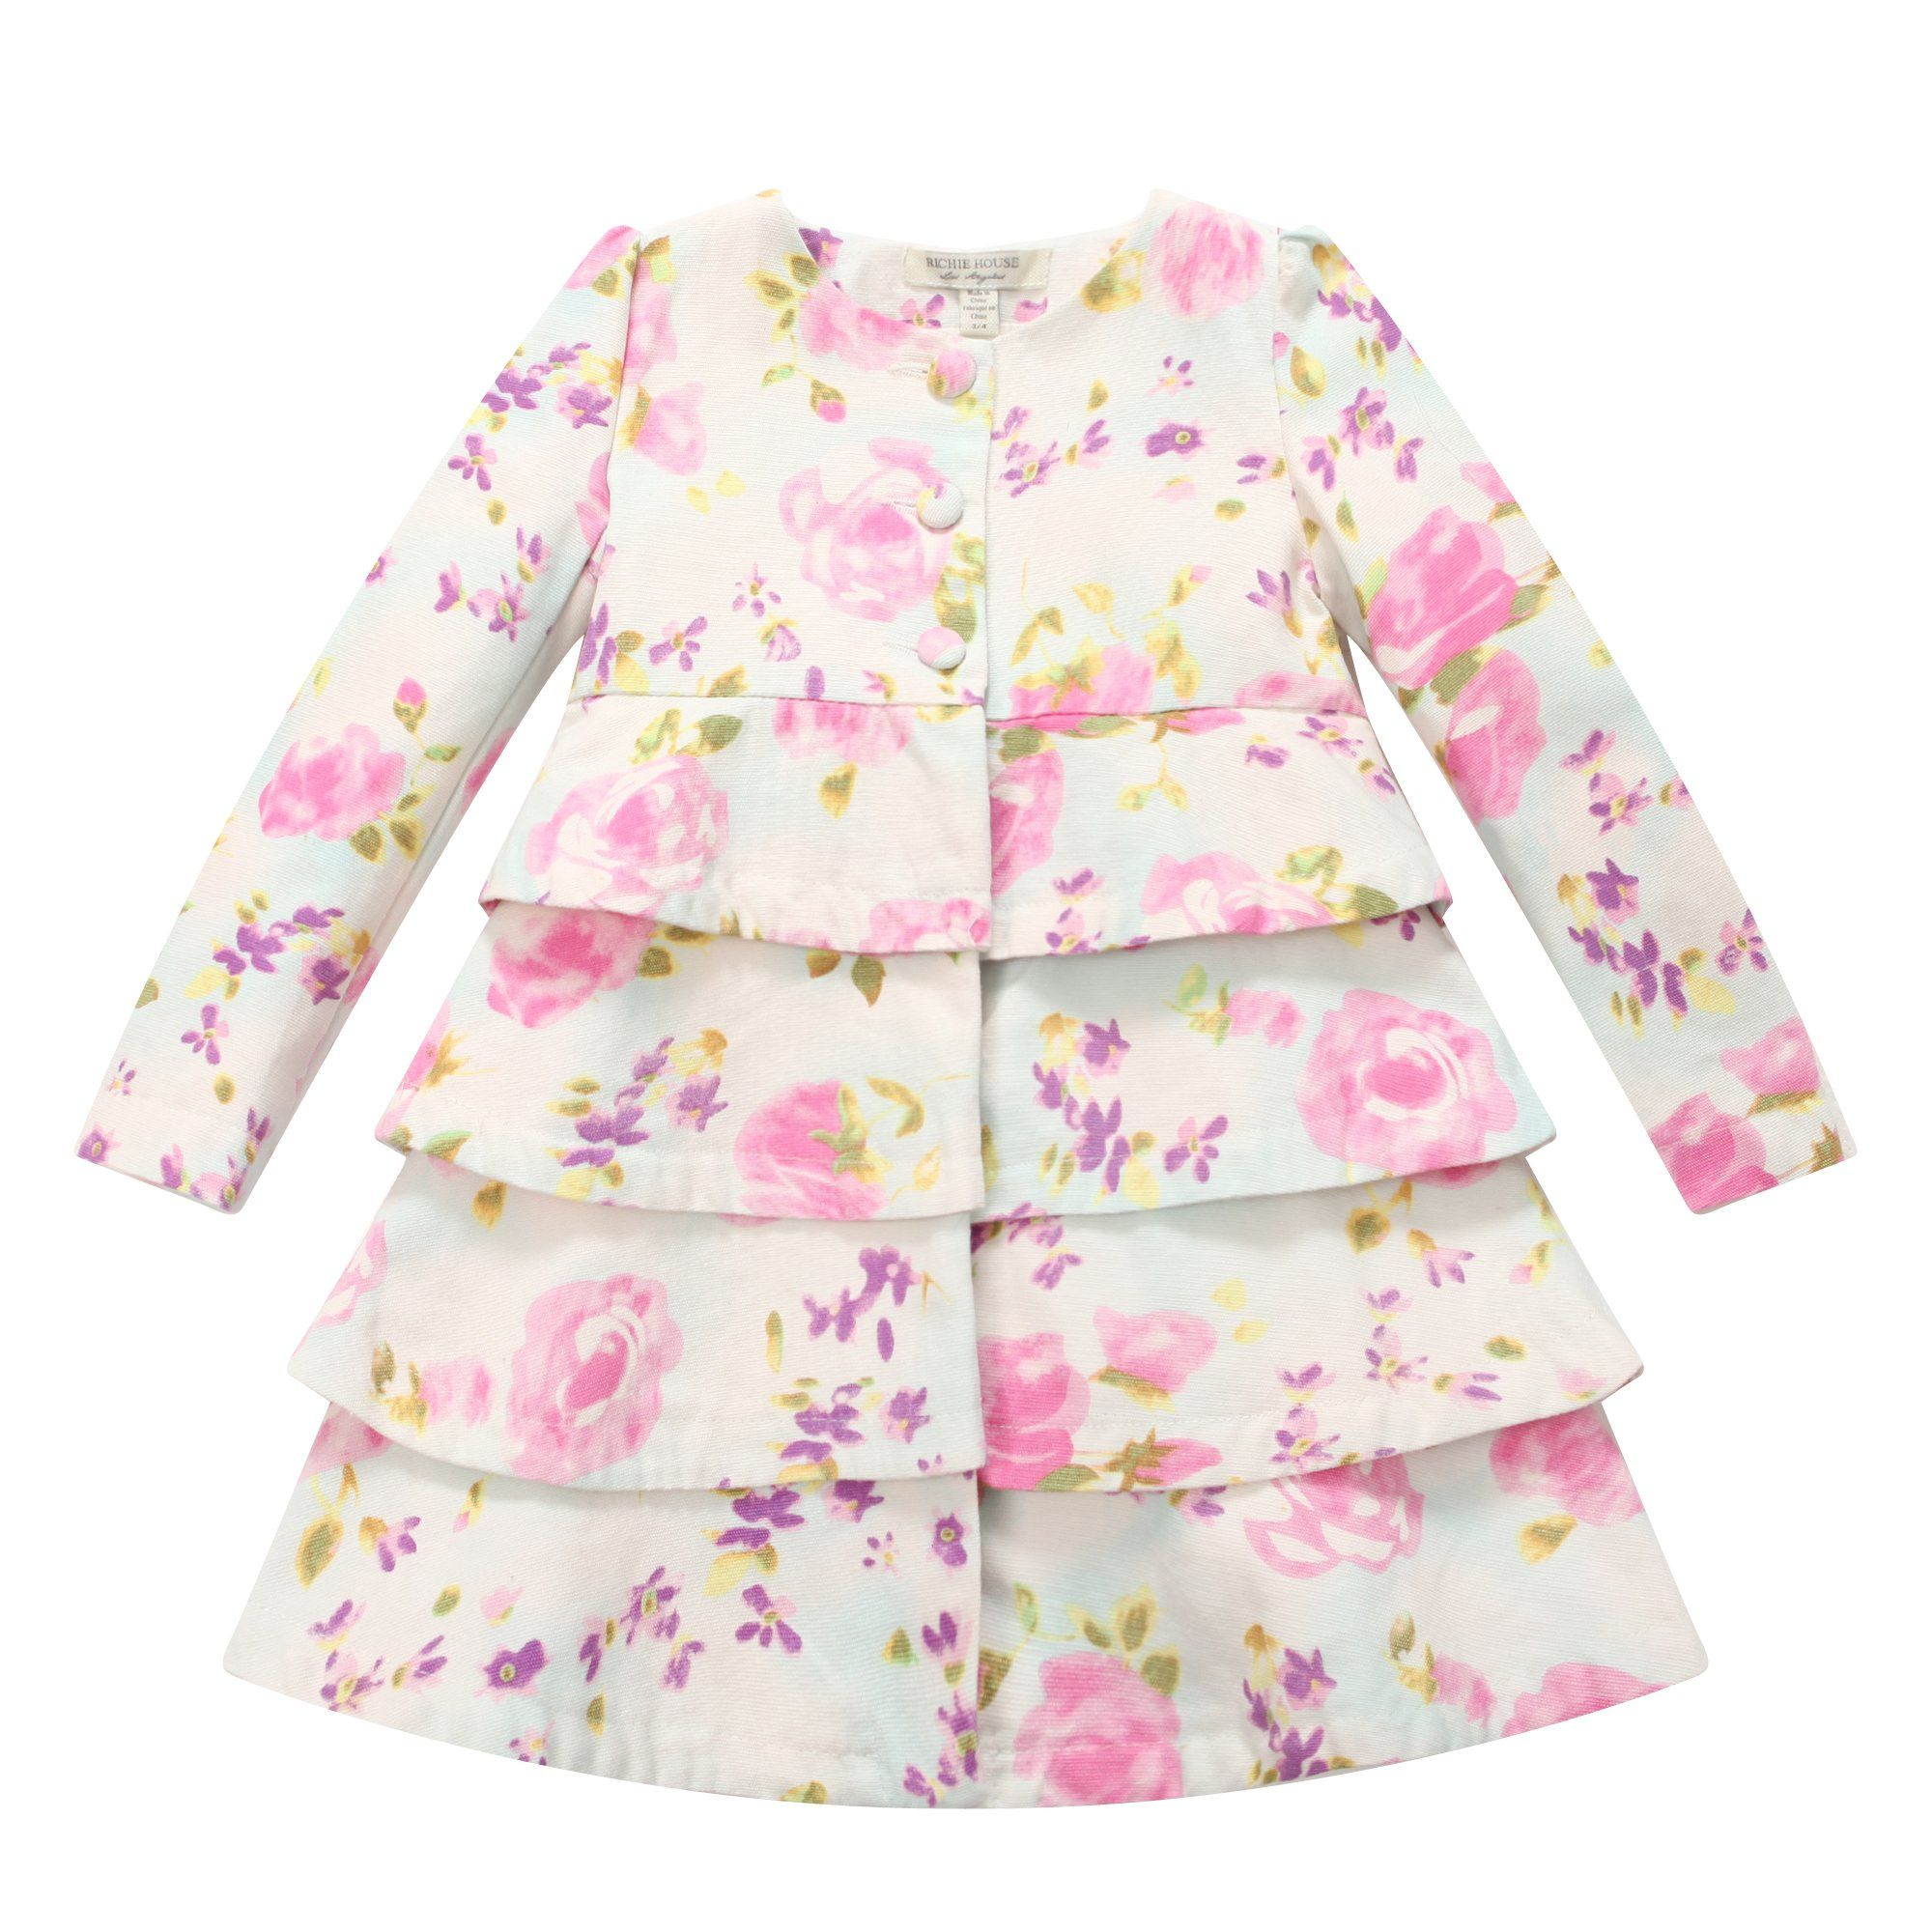 Richie House Girl's Floral Tiered Dress-coat RH0709-2/3-FBA